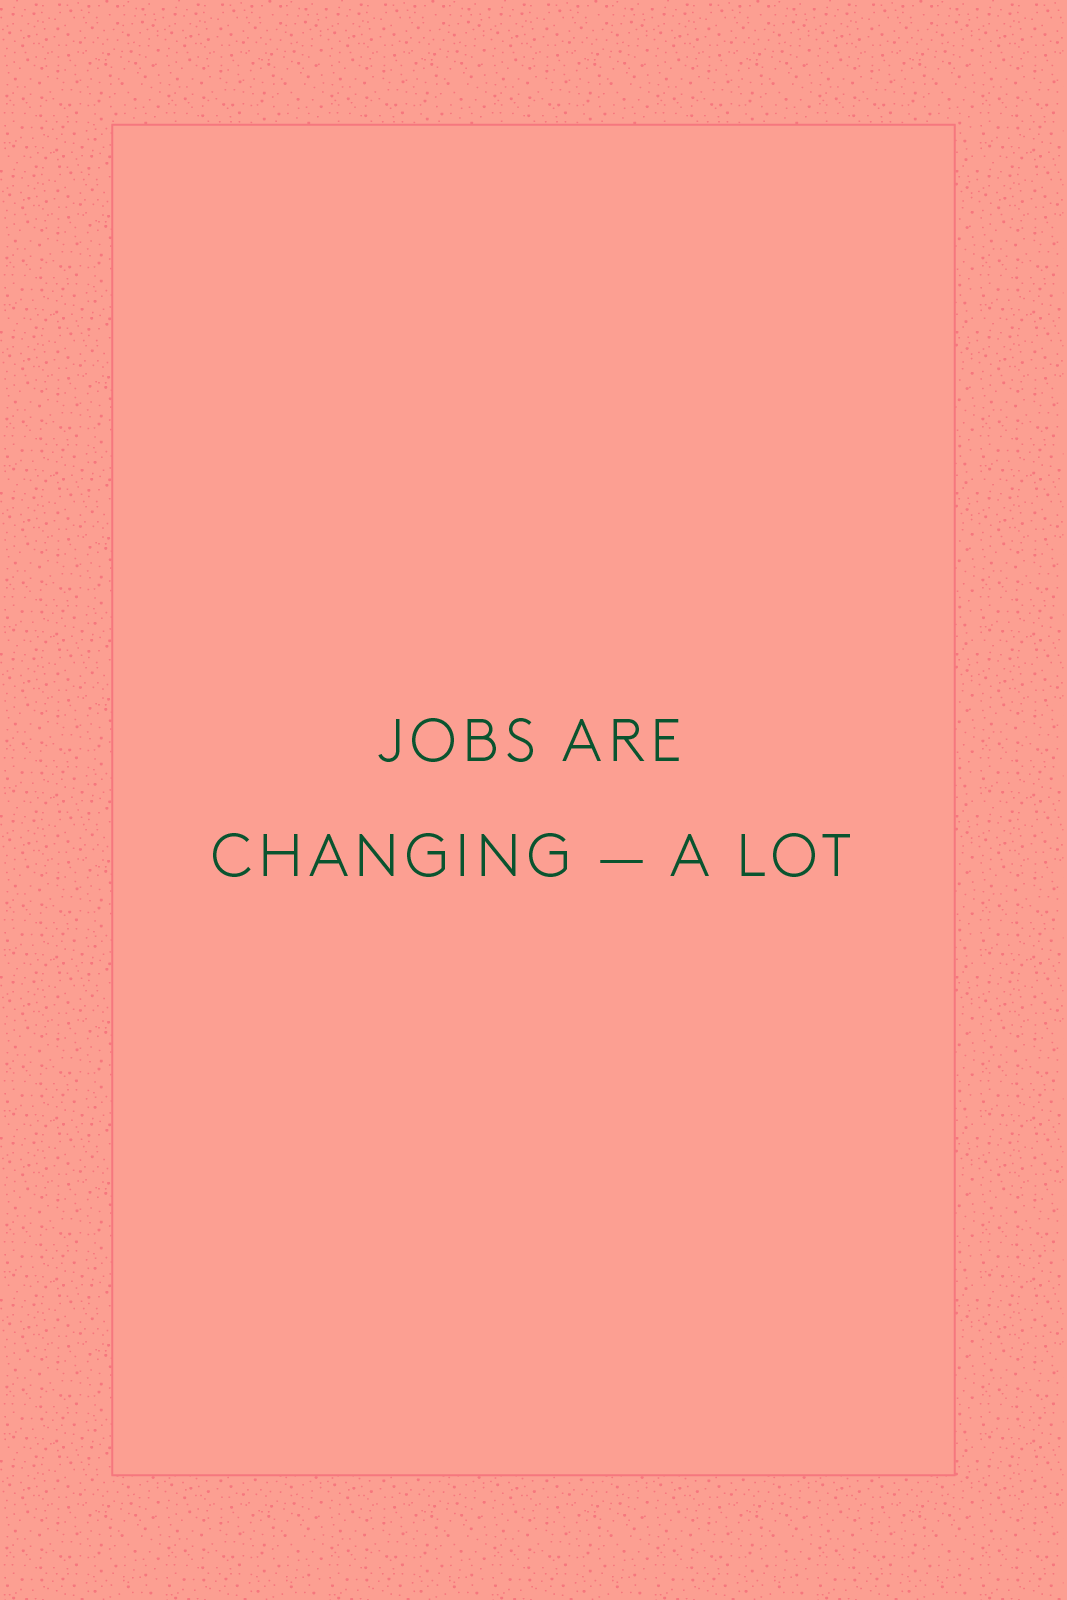 changing careers advice when to change jobs illustrated by alex marino